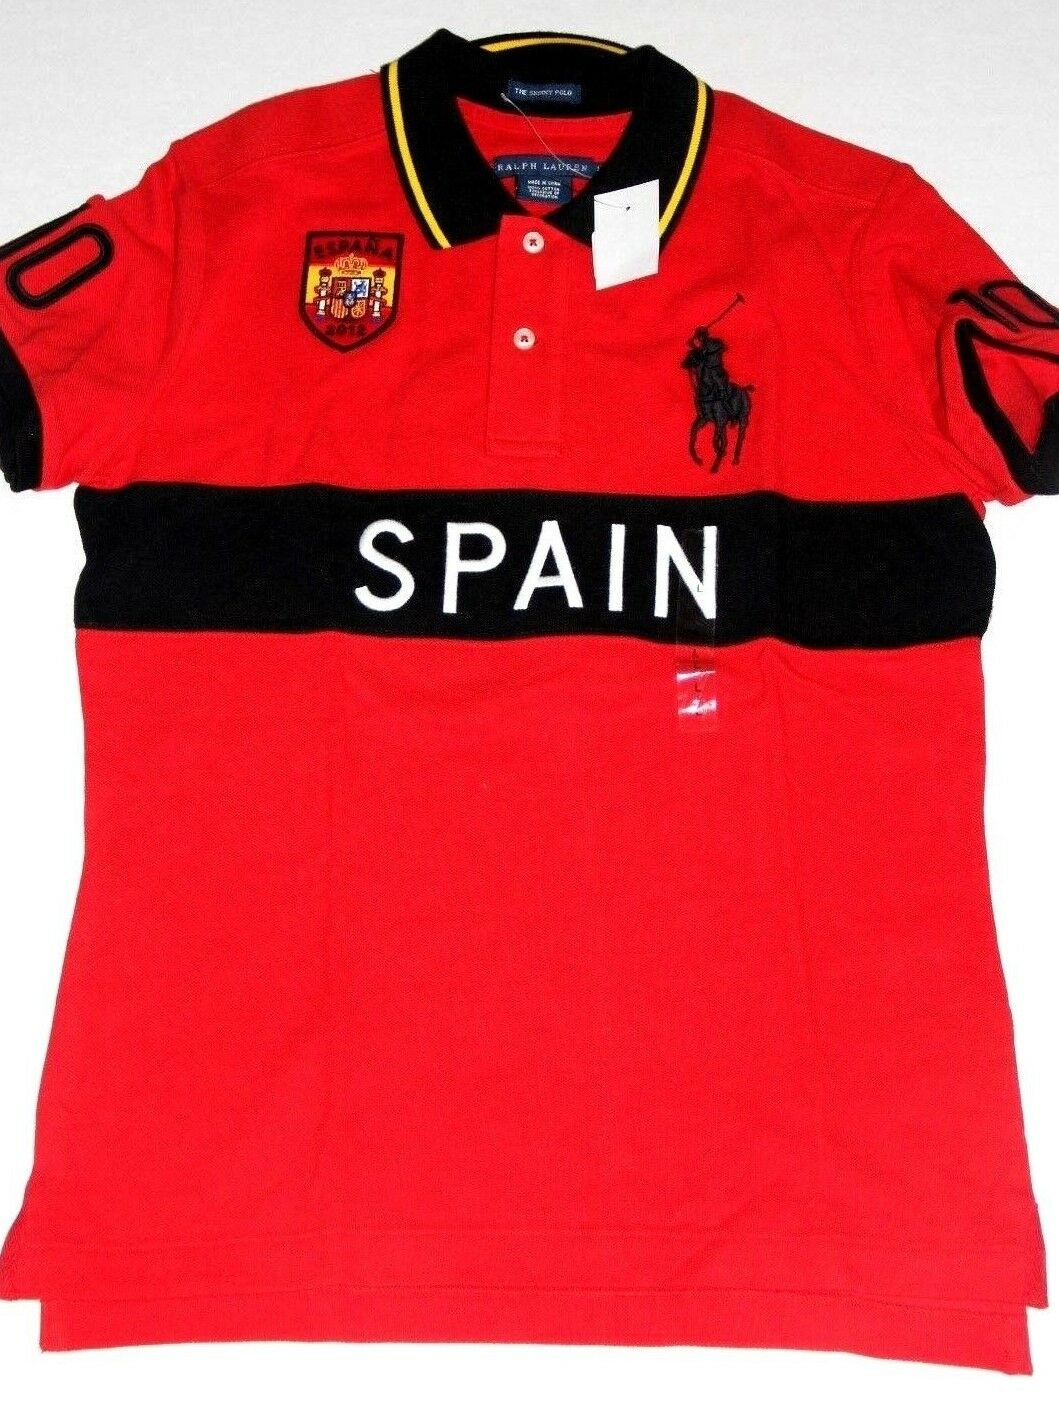 Polo Ralph Lauren damen rot Shirt  Big Pony Spain Flag  Large